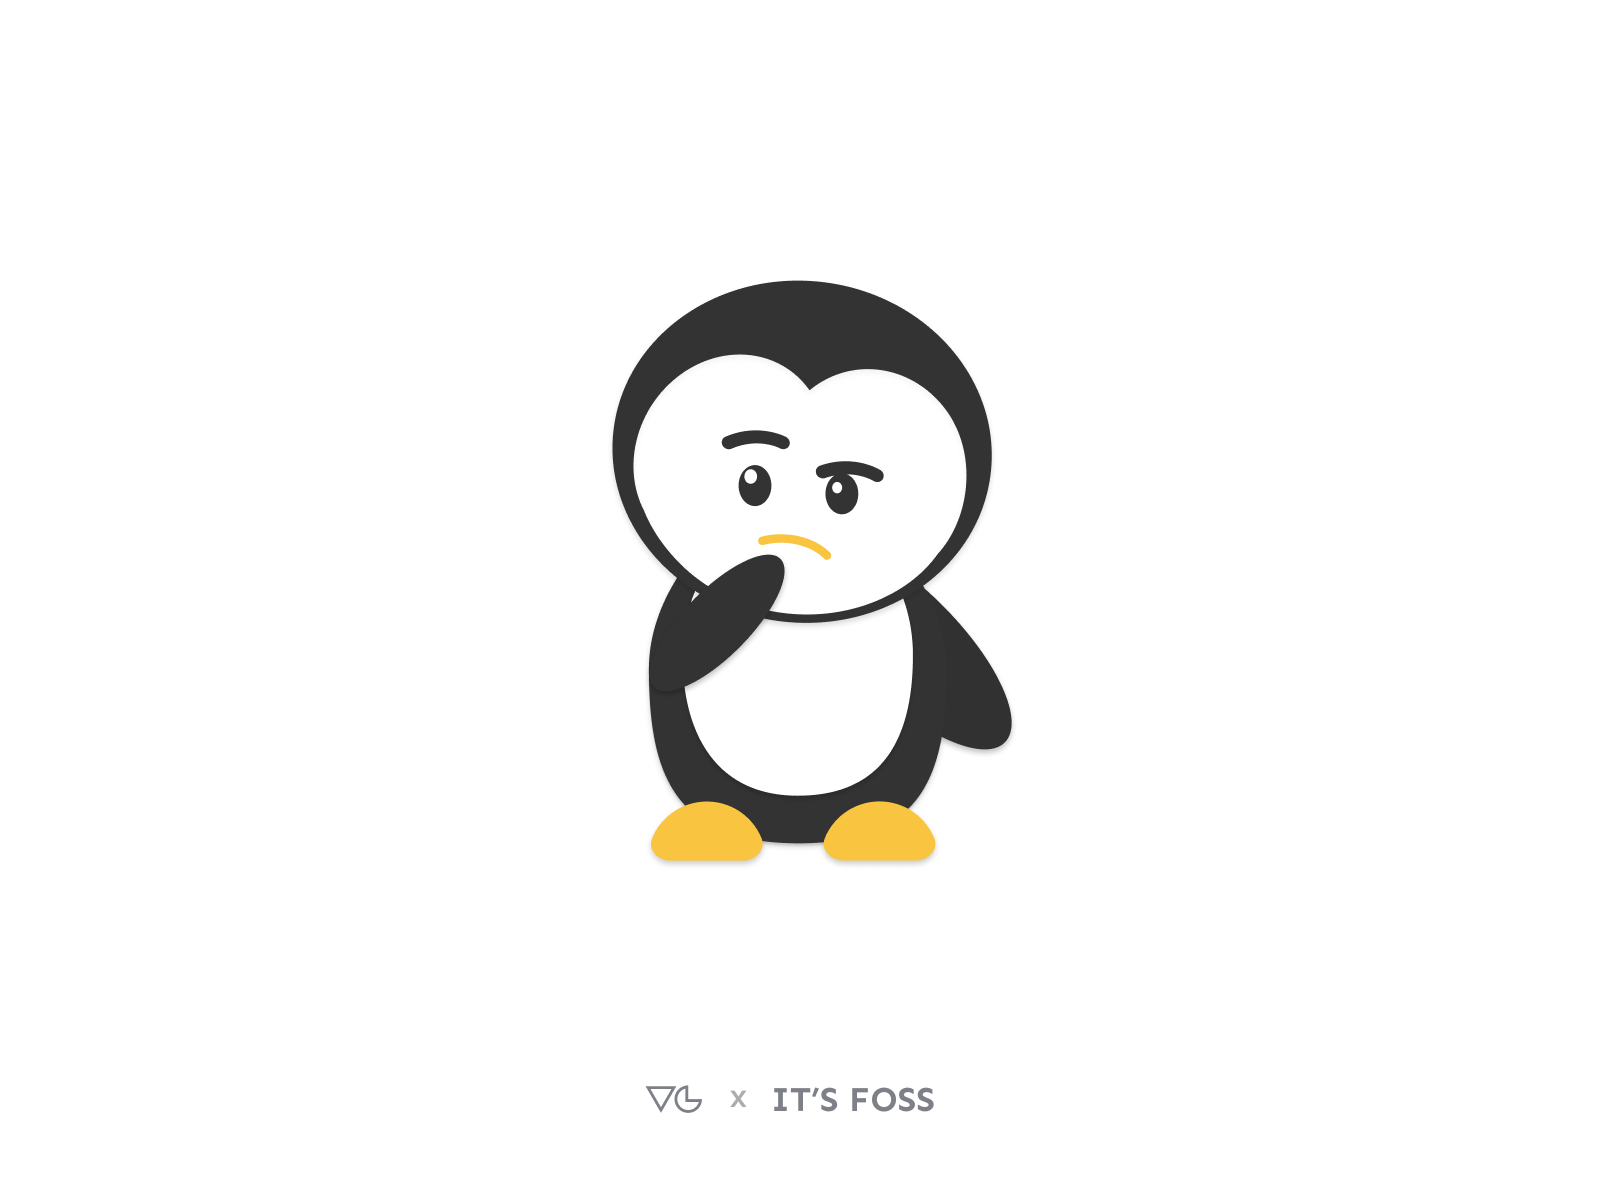 Thinking Penguin